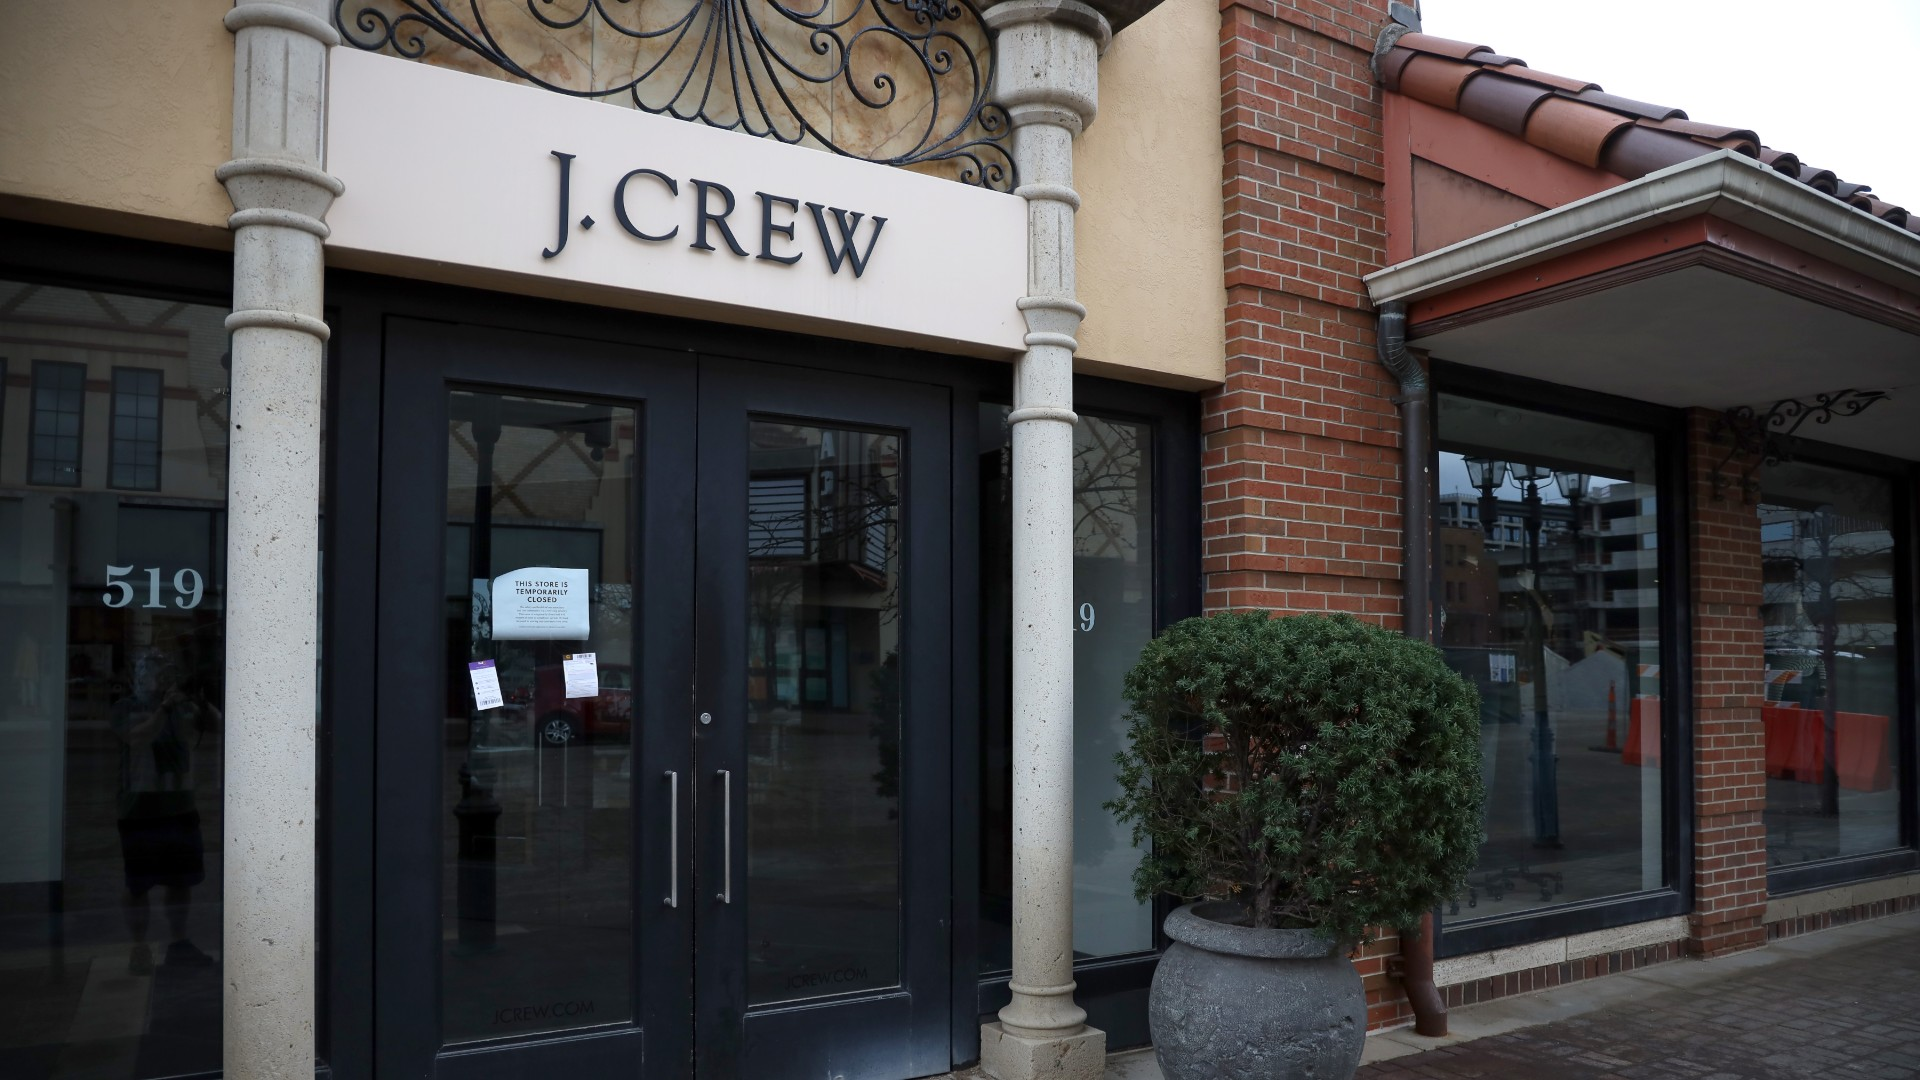 A closed sign is seen in the entrance of the J. Crew store at Country Club Plaza as the Coronavirus Pandemic causes a climate of anxiety and changing routines in America on April 02, 2020 in Kansas City, Missouri. (Jamie Squire/Getty Images)